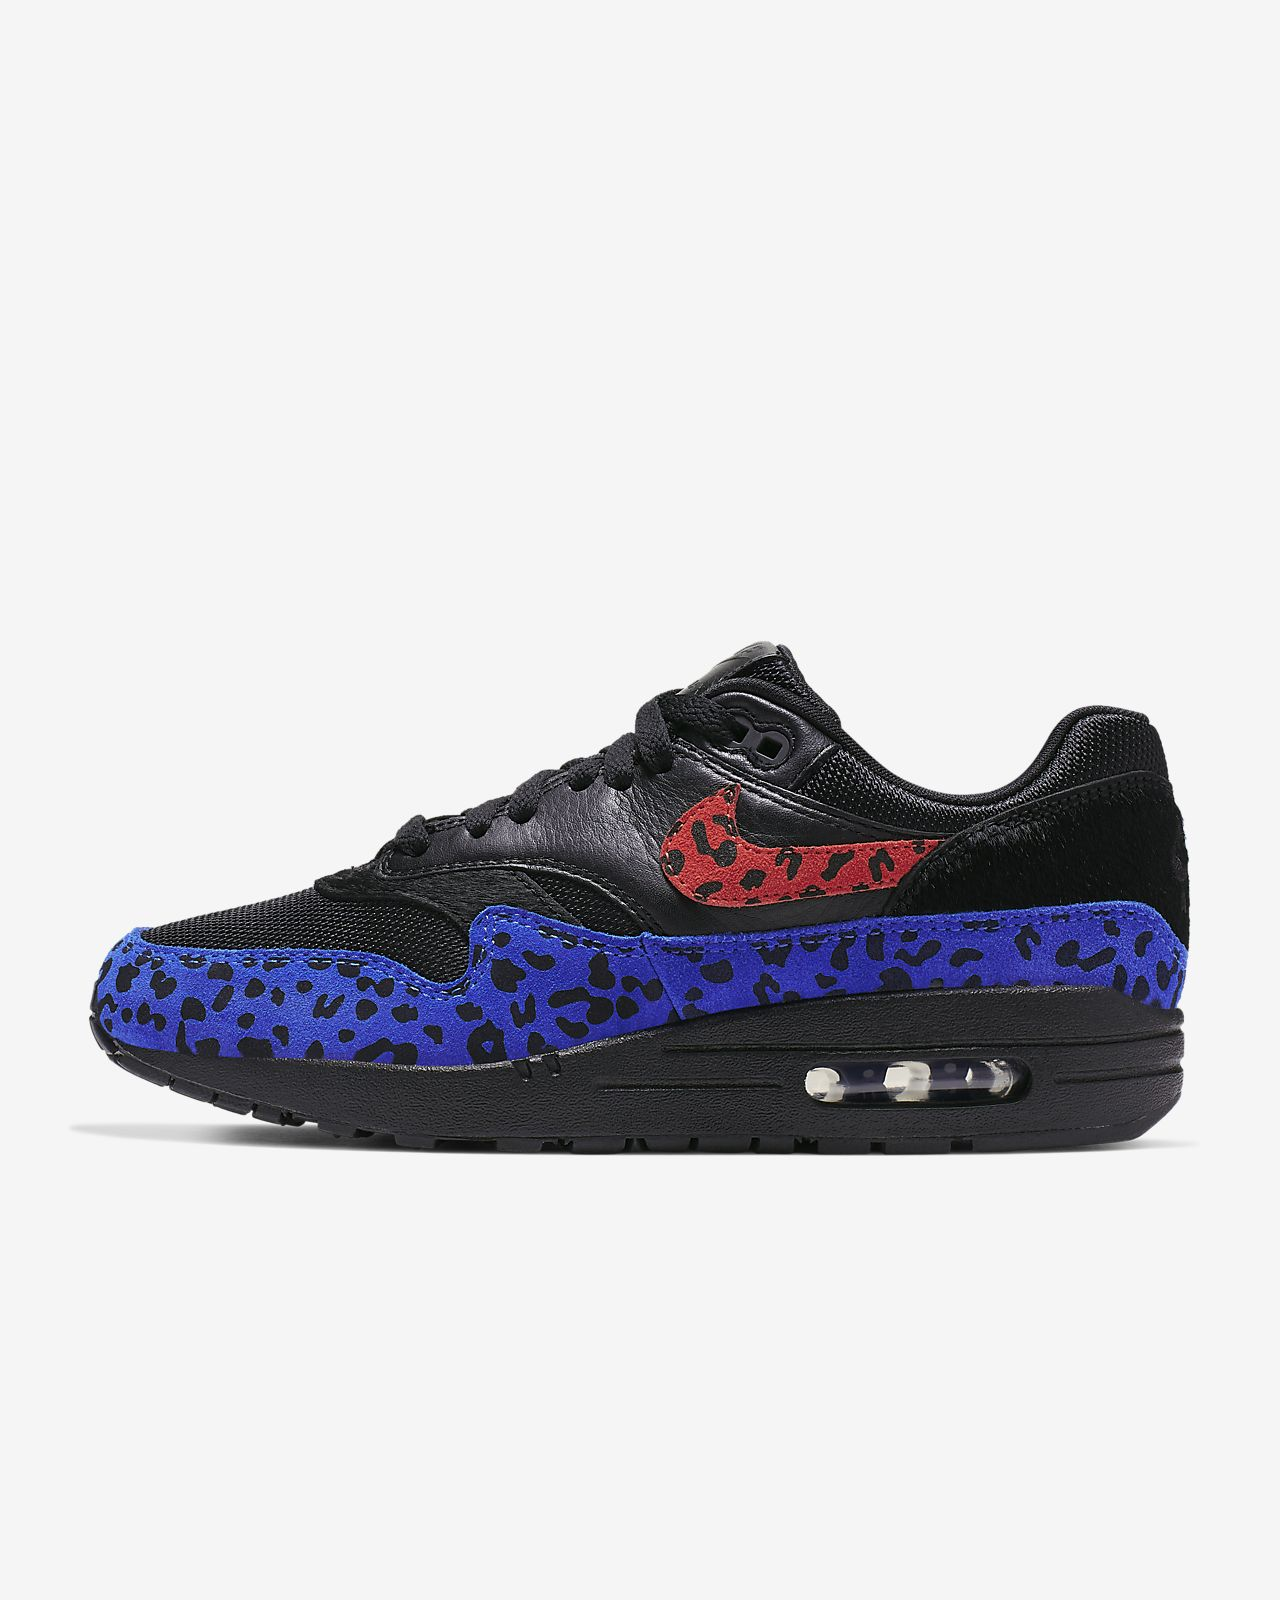 Nike Air Max 1 Premium Animal Damenschuh